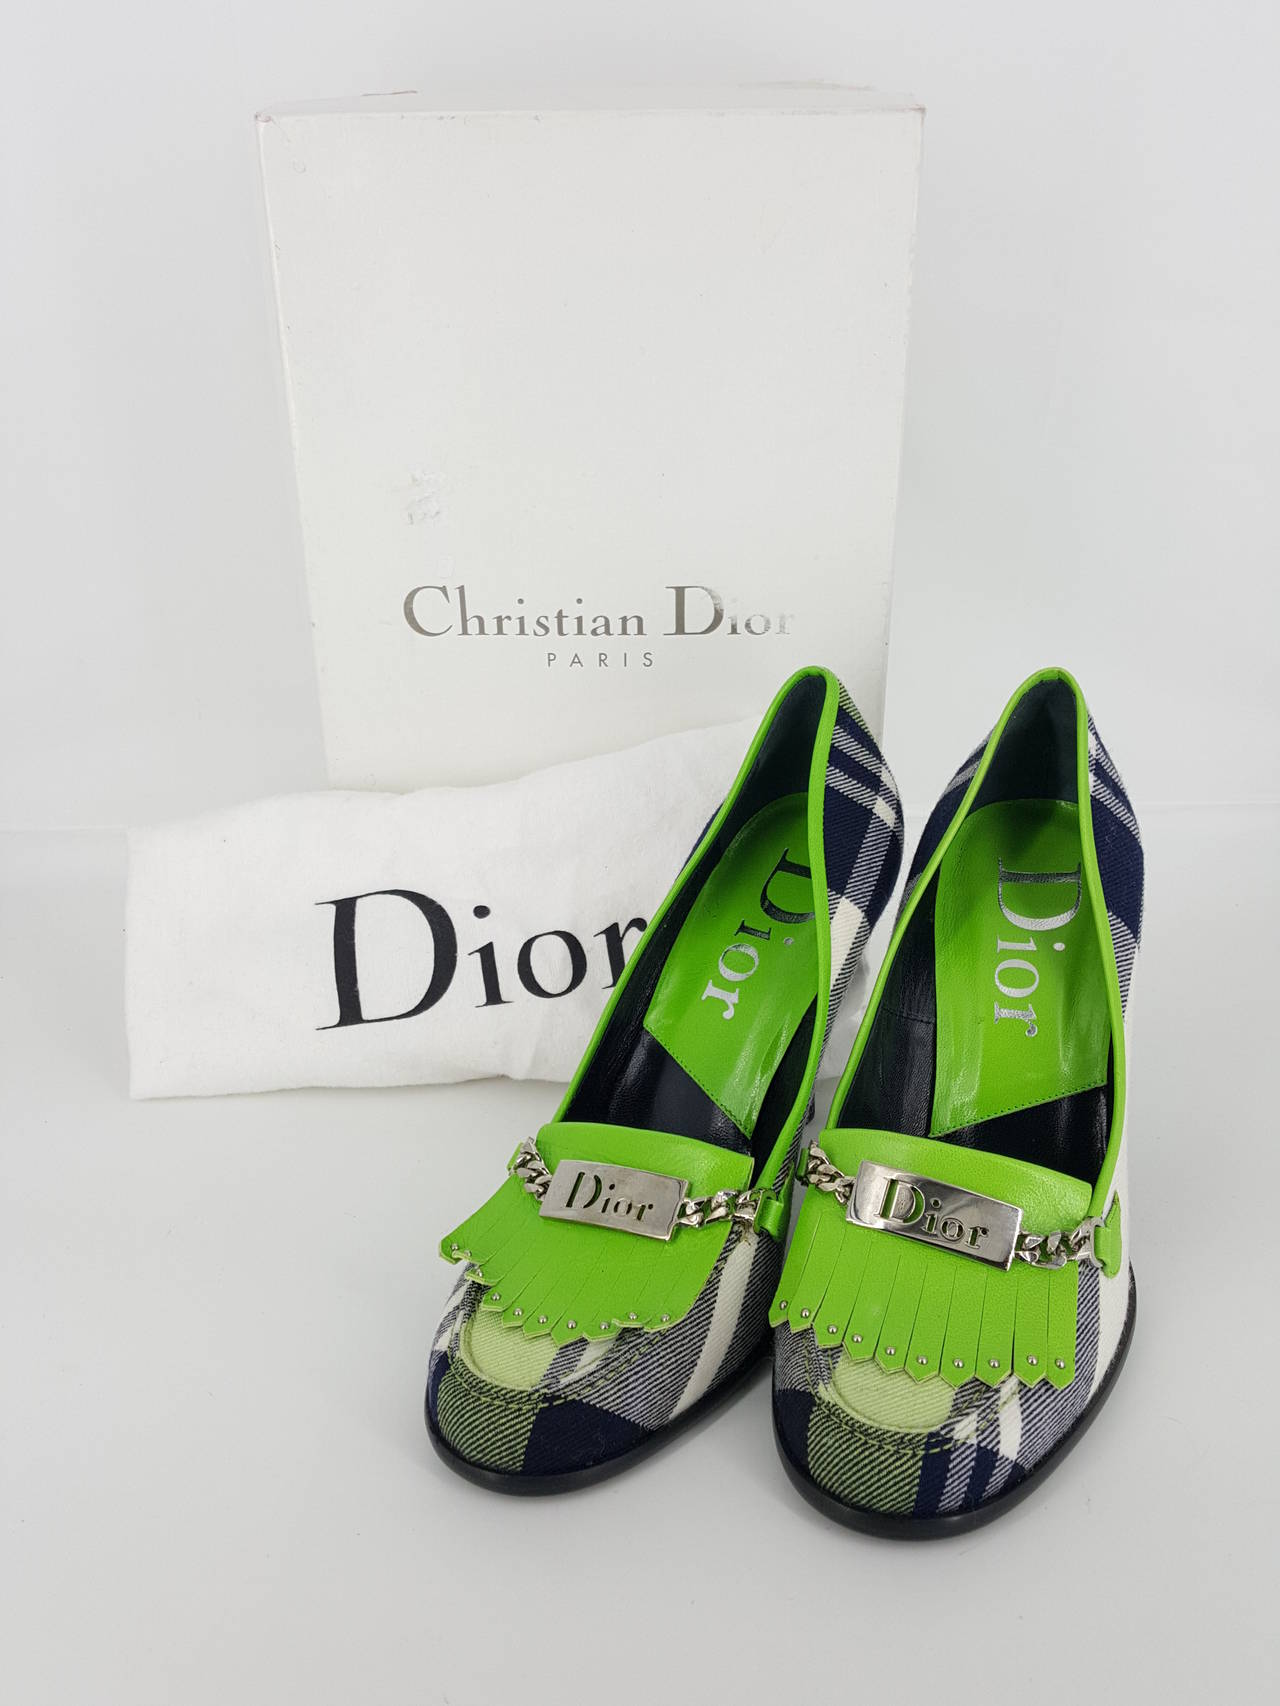 Women's Christian Dior Vibrant Plaid Flannel Pumps in size 36 1/2 For Sale